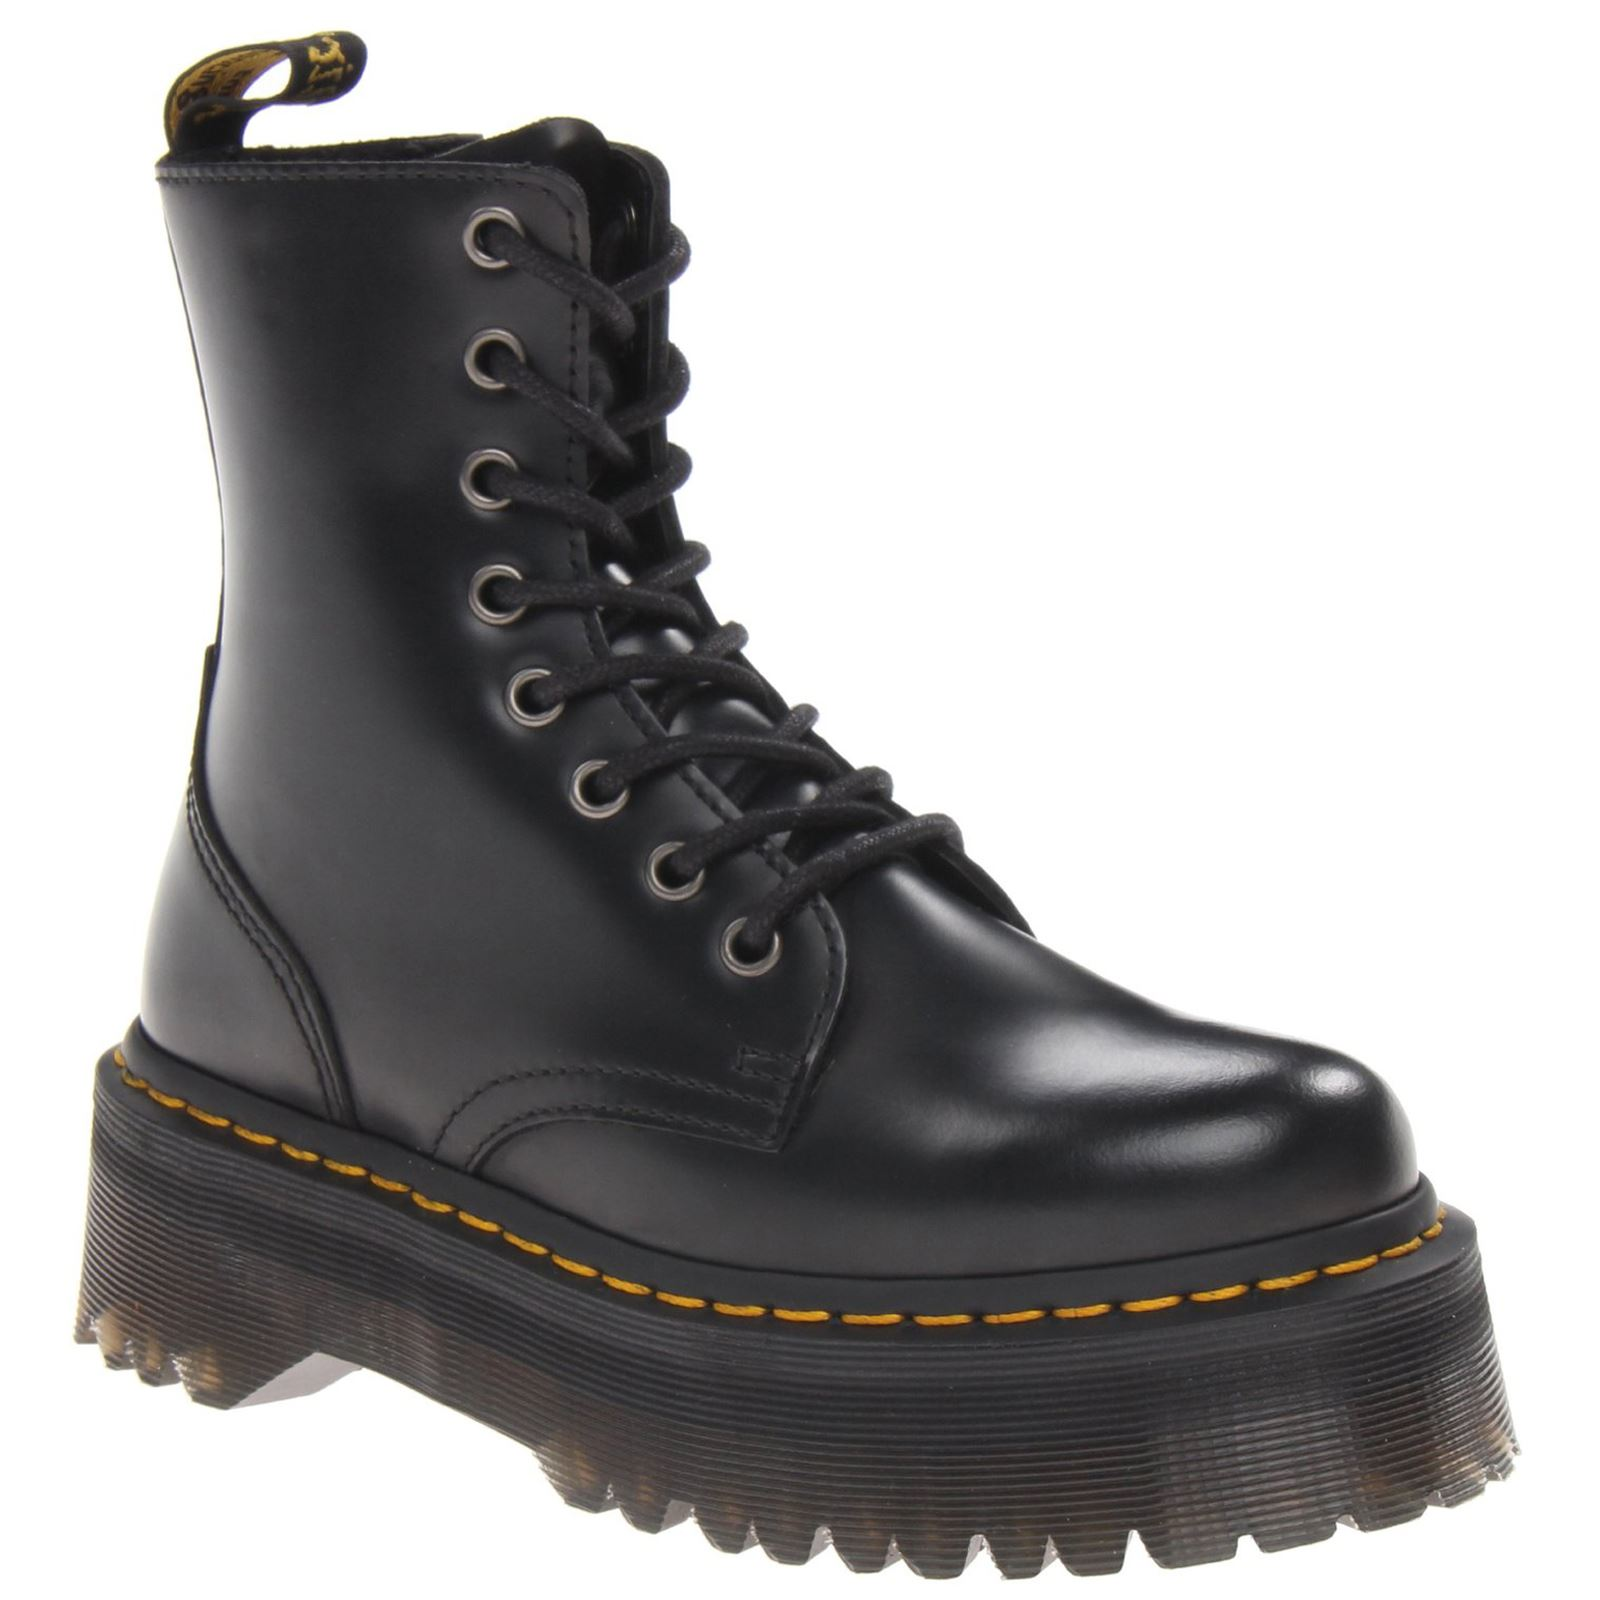 076d22e6fd6a Description  If you are looking for boots that will turn heads wherever you  go